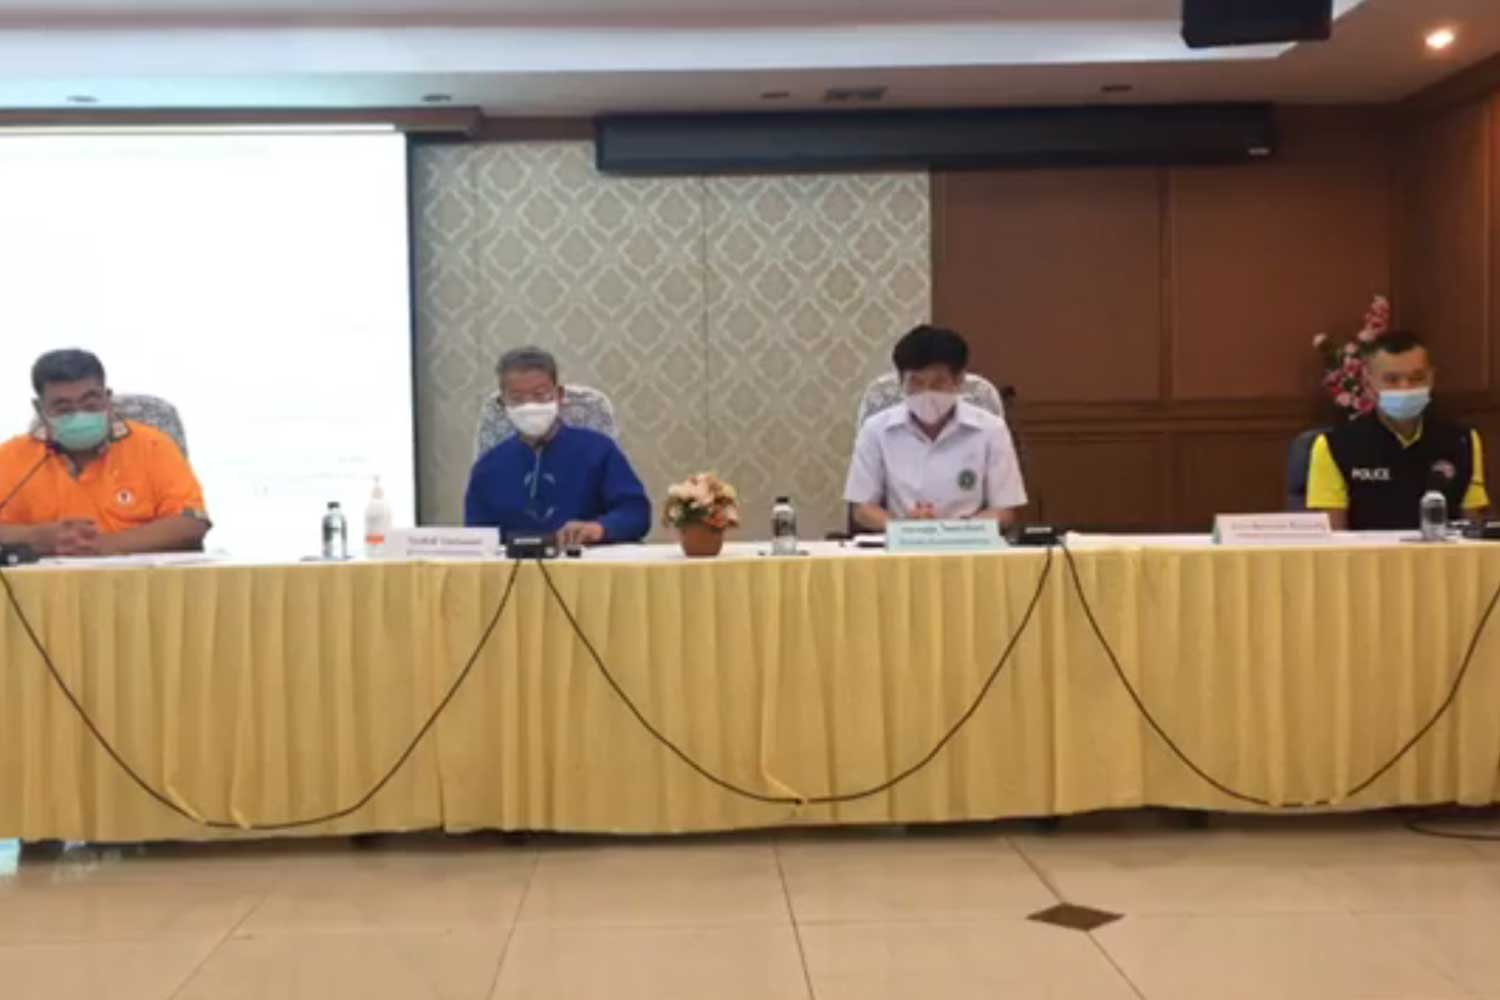 Health officials in Samut Sakhon prepare to hold a media briefing about the Covid-19 infection in the province. (Photo taken from Samut Sakhon public relations office Facebook page)